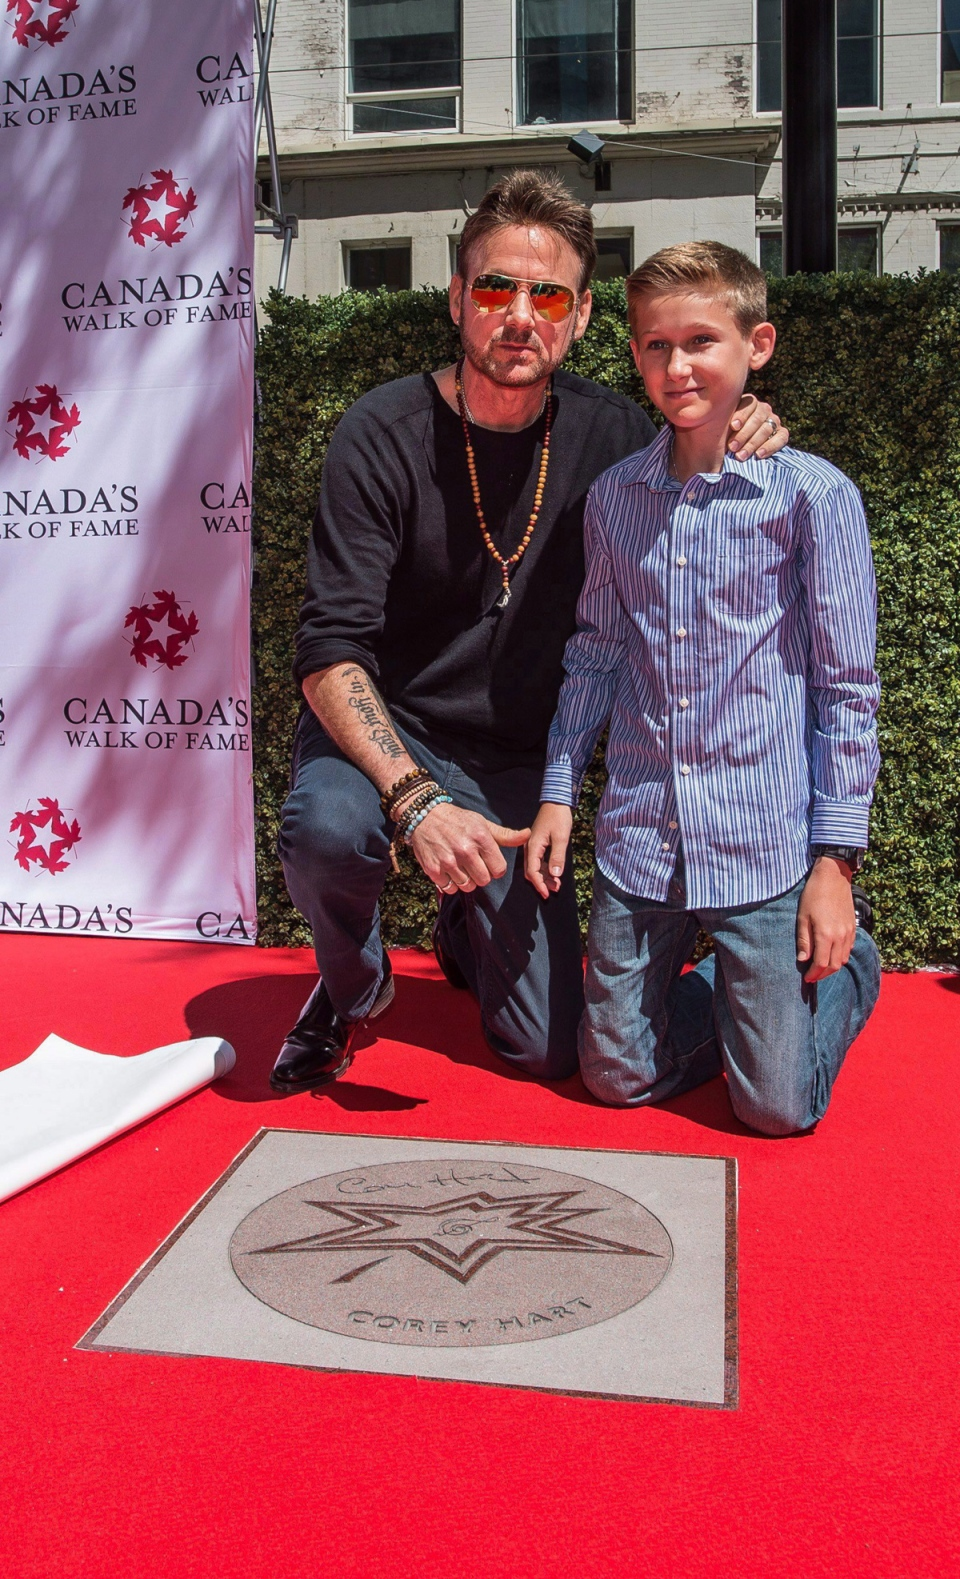 2016 Canada's Walk of Fame inductee Corey Hart poses for a photo with his son Rain in Toronto on June 7, 2017. (Aaron Vincent Elkaim / THE CANADIAN PRESS)